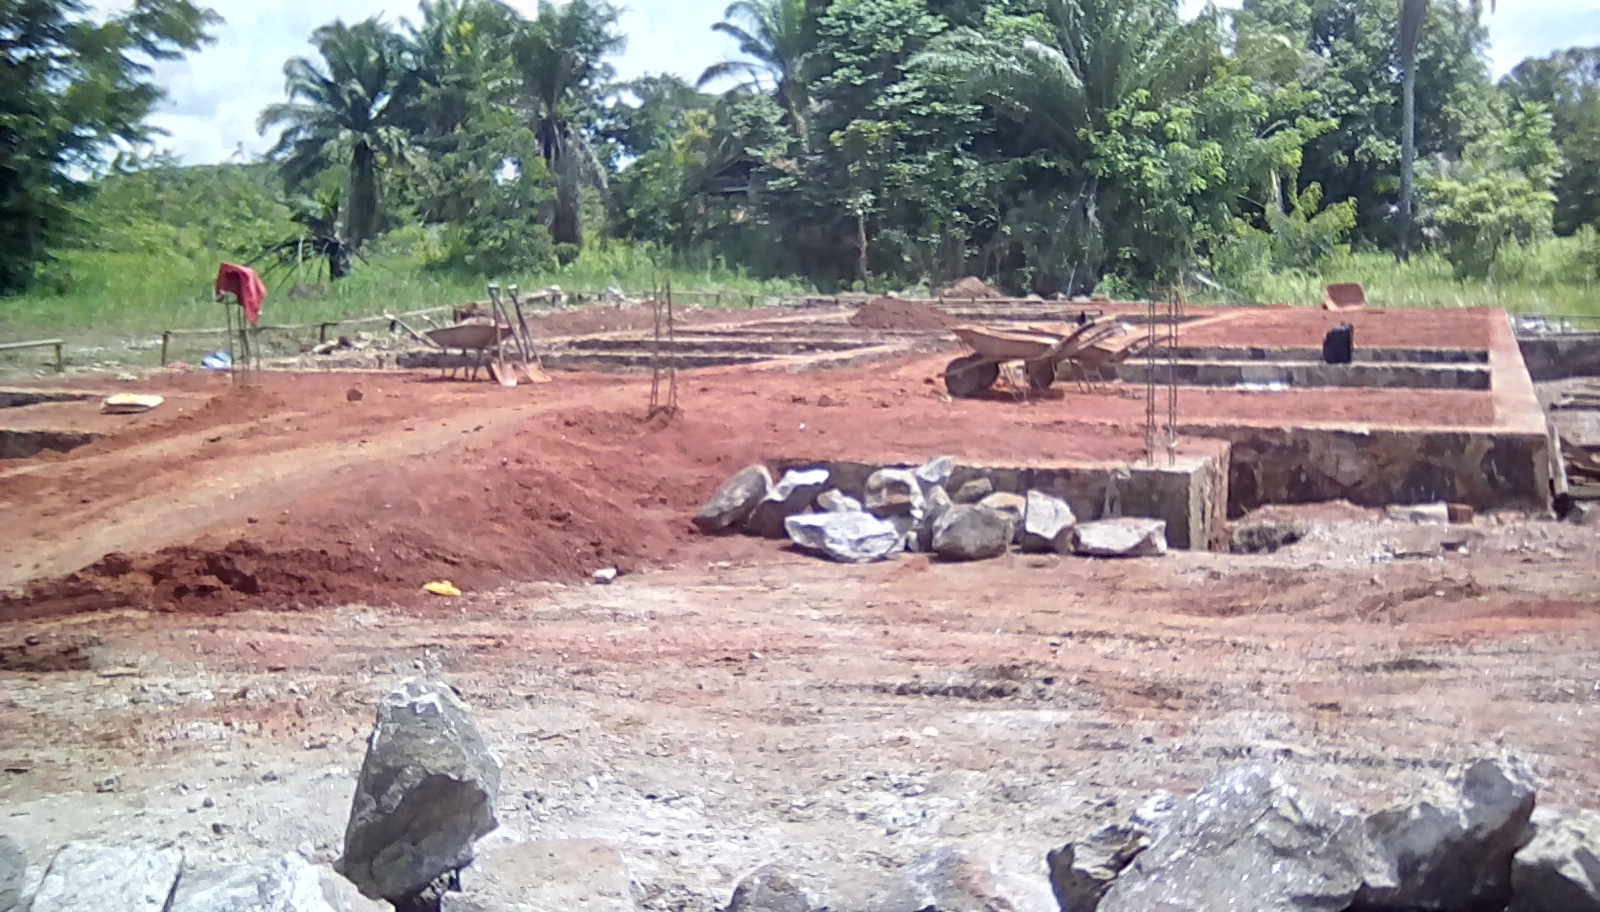 Completion of the back veranda foundation and columns was delayed due to lack of cement. A stone base was laid to support partion walls of the bathrooms and lockers. Backfill of murram soil is in progress